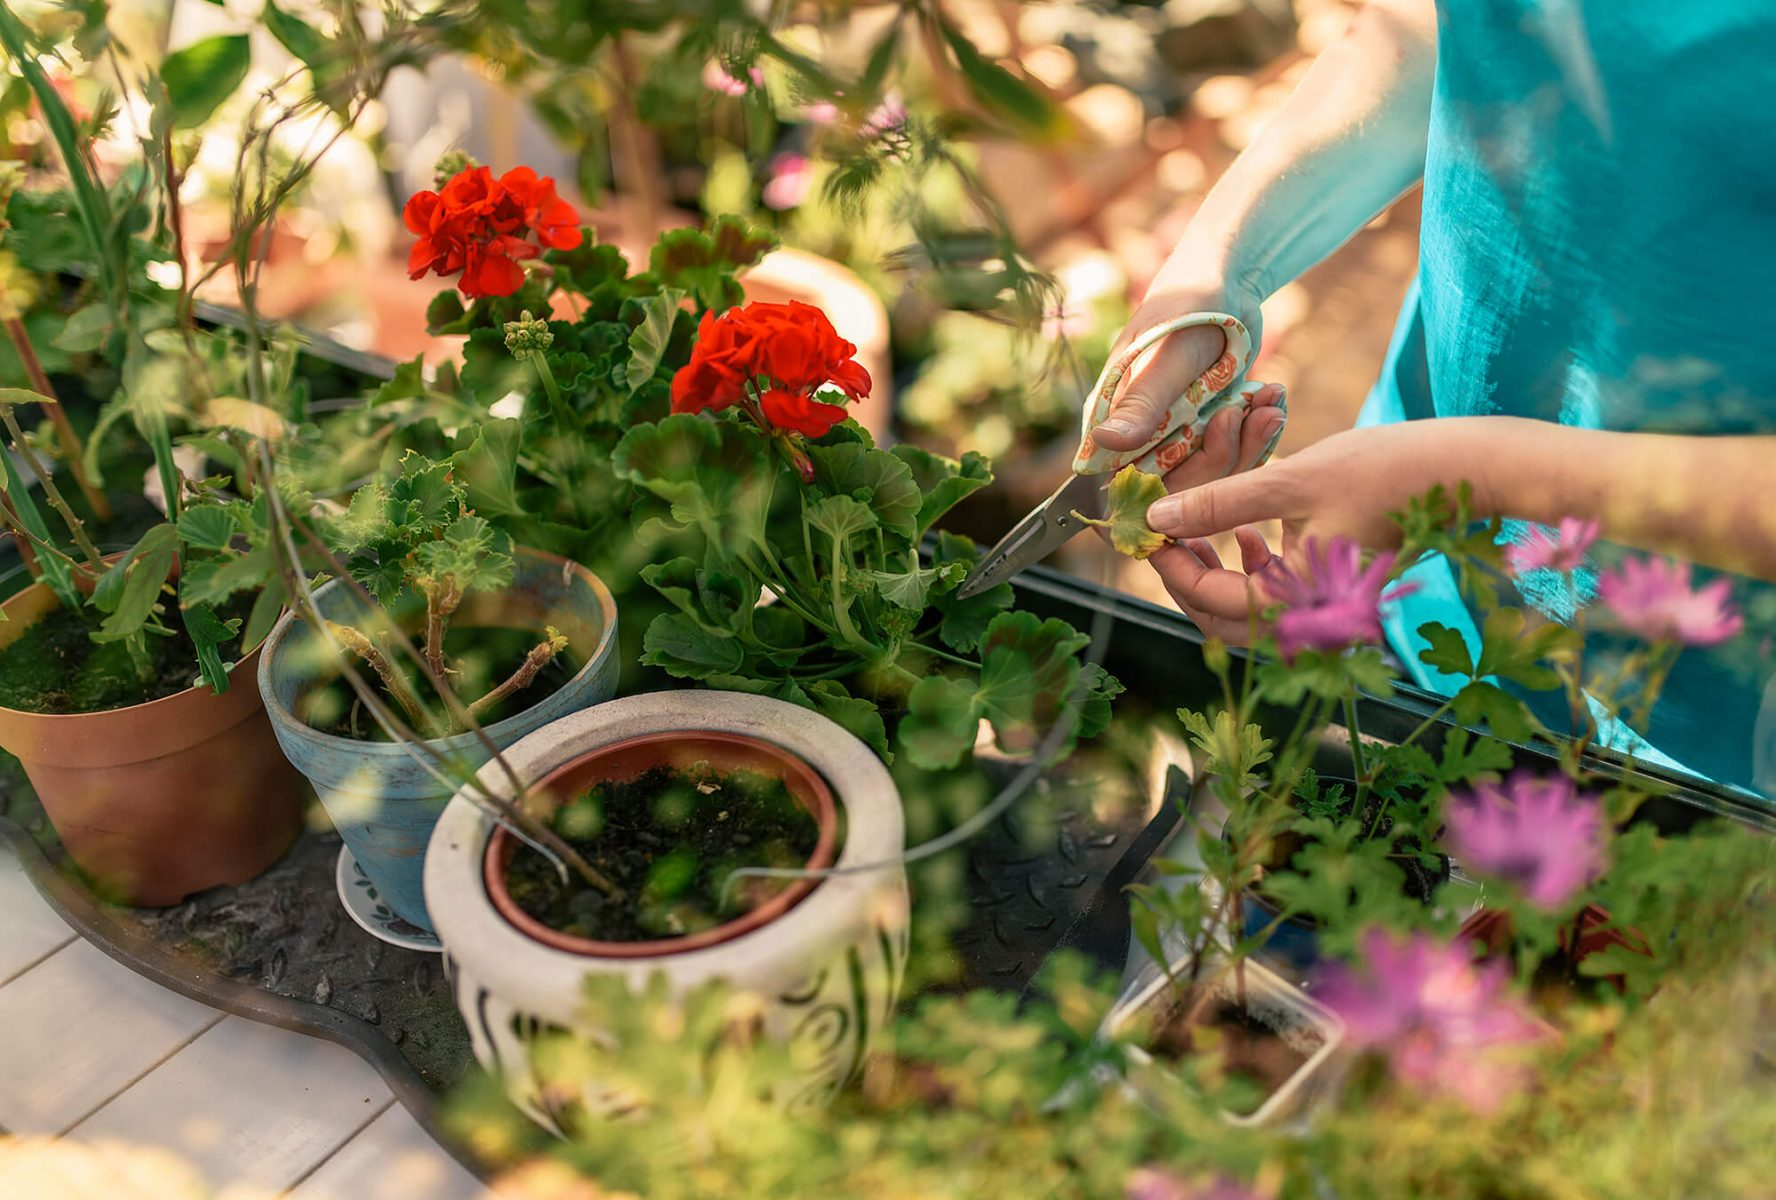 Woman cutting flowers in orangery. Colorful image with lovely atmosphere.